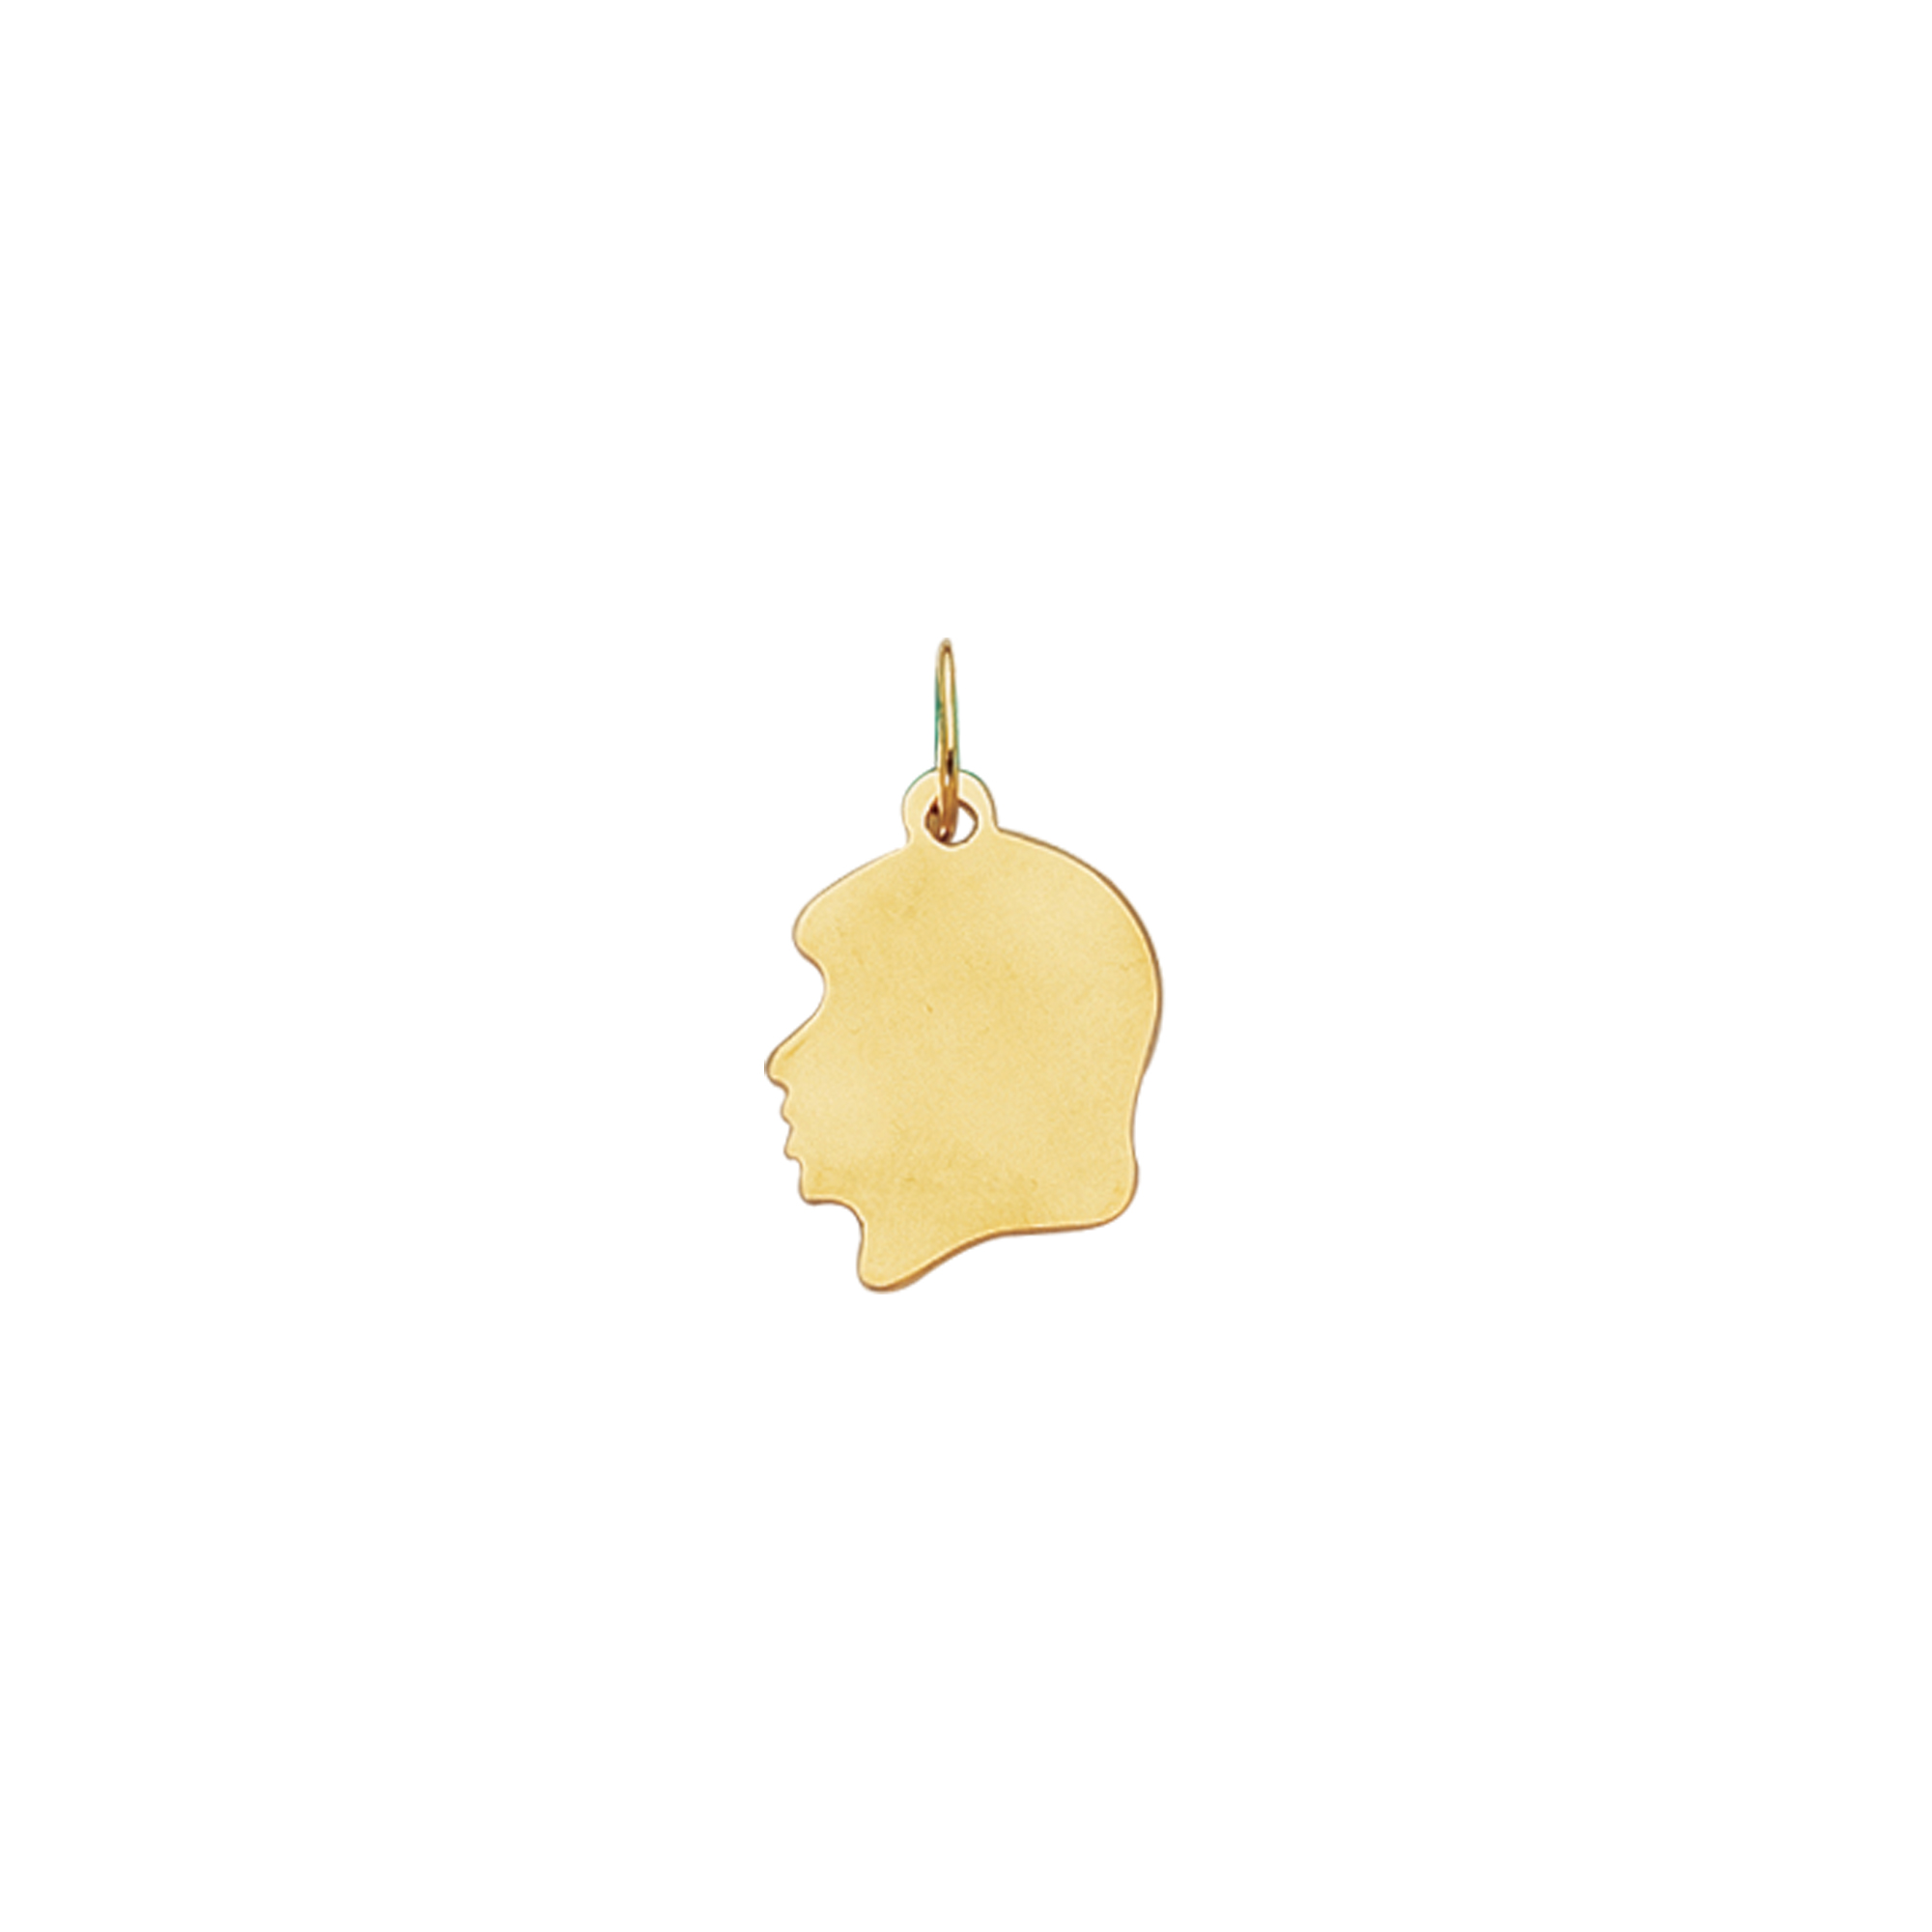 14K Yellow Gold Pendant Wyatt's Jewelers Seattle, WA